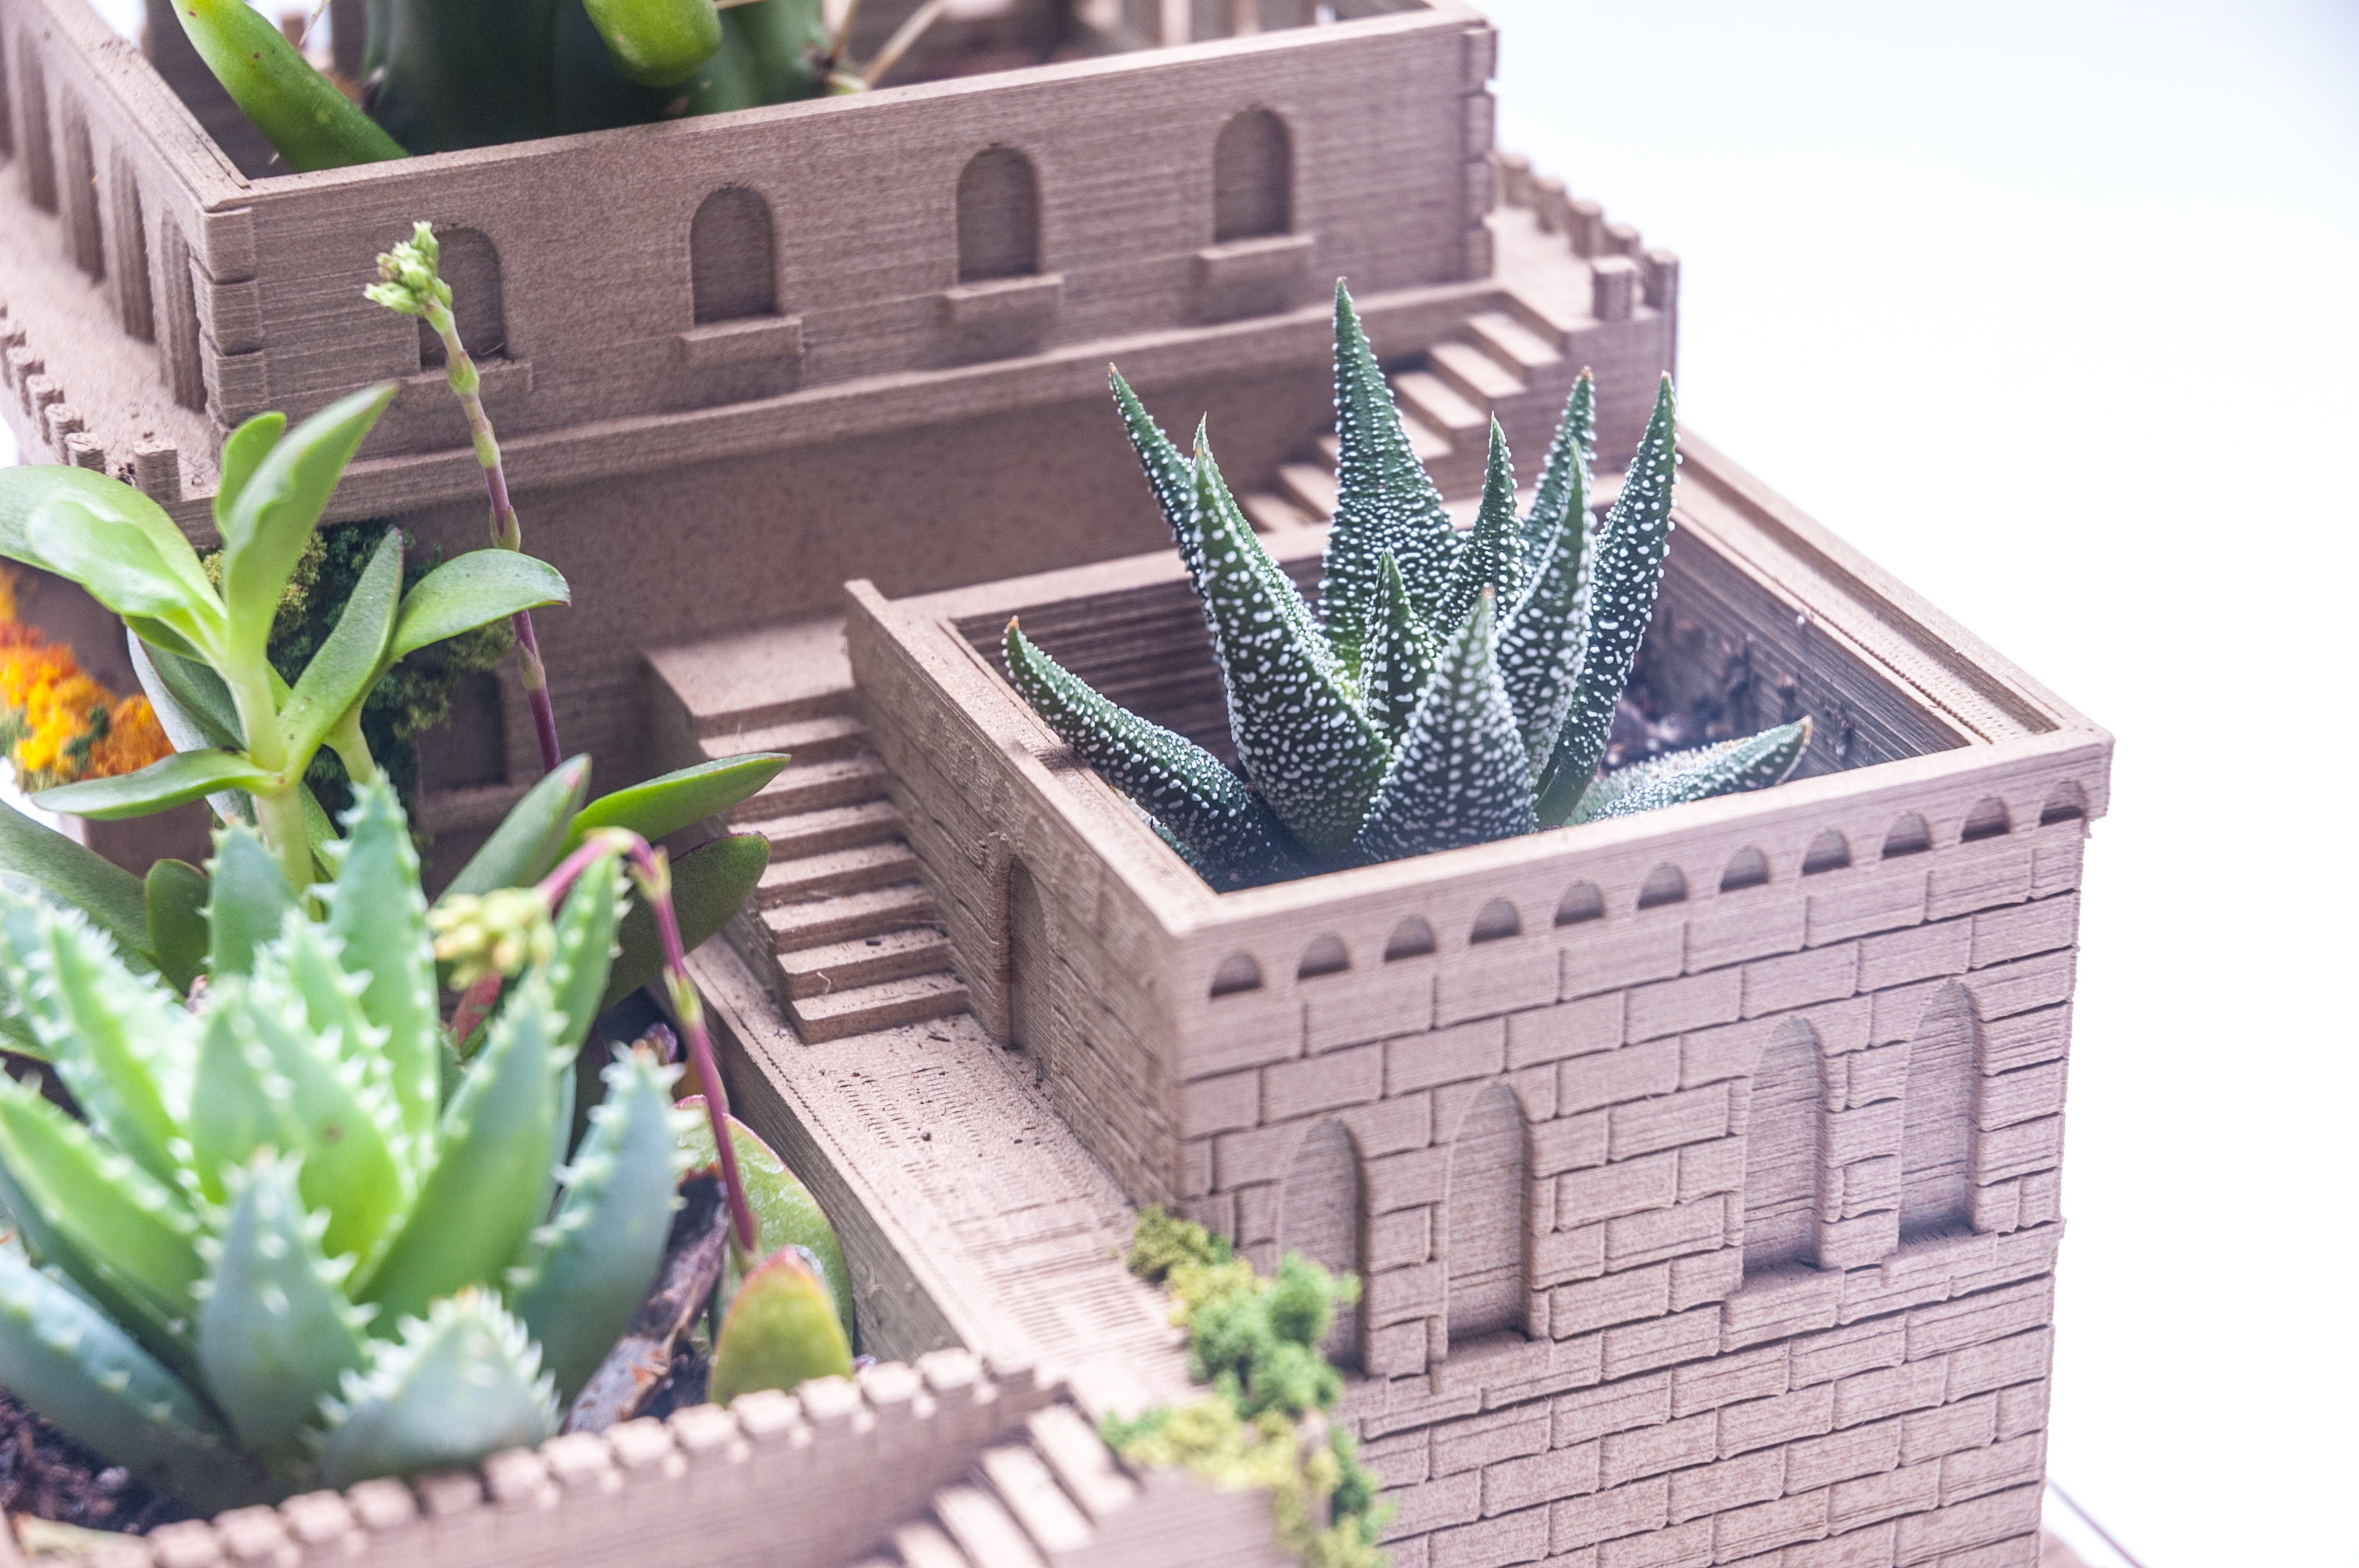 3d printed mini middle eastern villas 3 in 1 planter by yuriysklyar pinshape